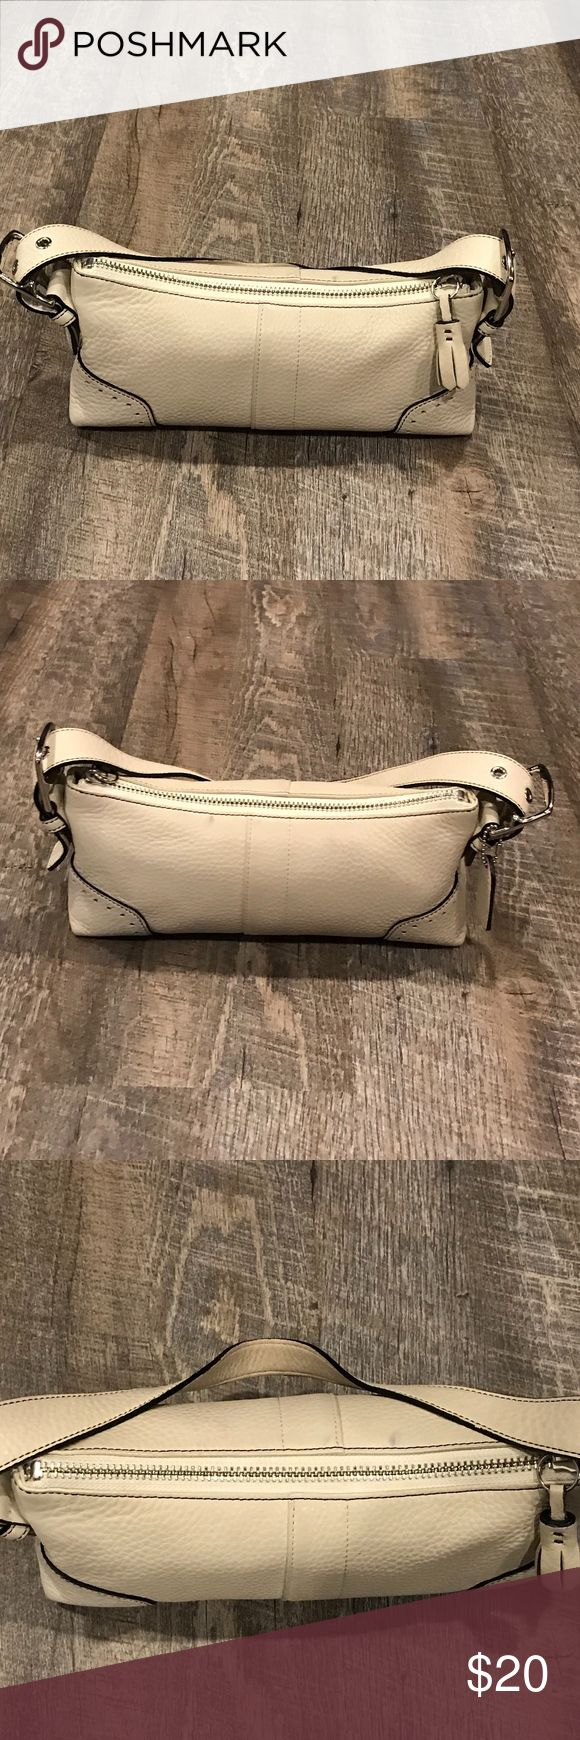 Coach off-white handbag Coach almost new, one minor mark on top of bag.  Zip top, with stitching details on corners of bag with buckle on each side.  Holds cell and other small accessories.  Great for day trip! Clean interior. Great for summer! Coach Bags Mini Bags